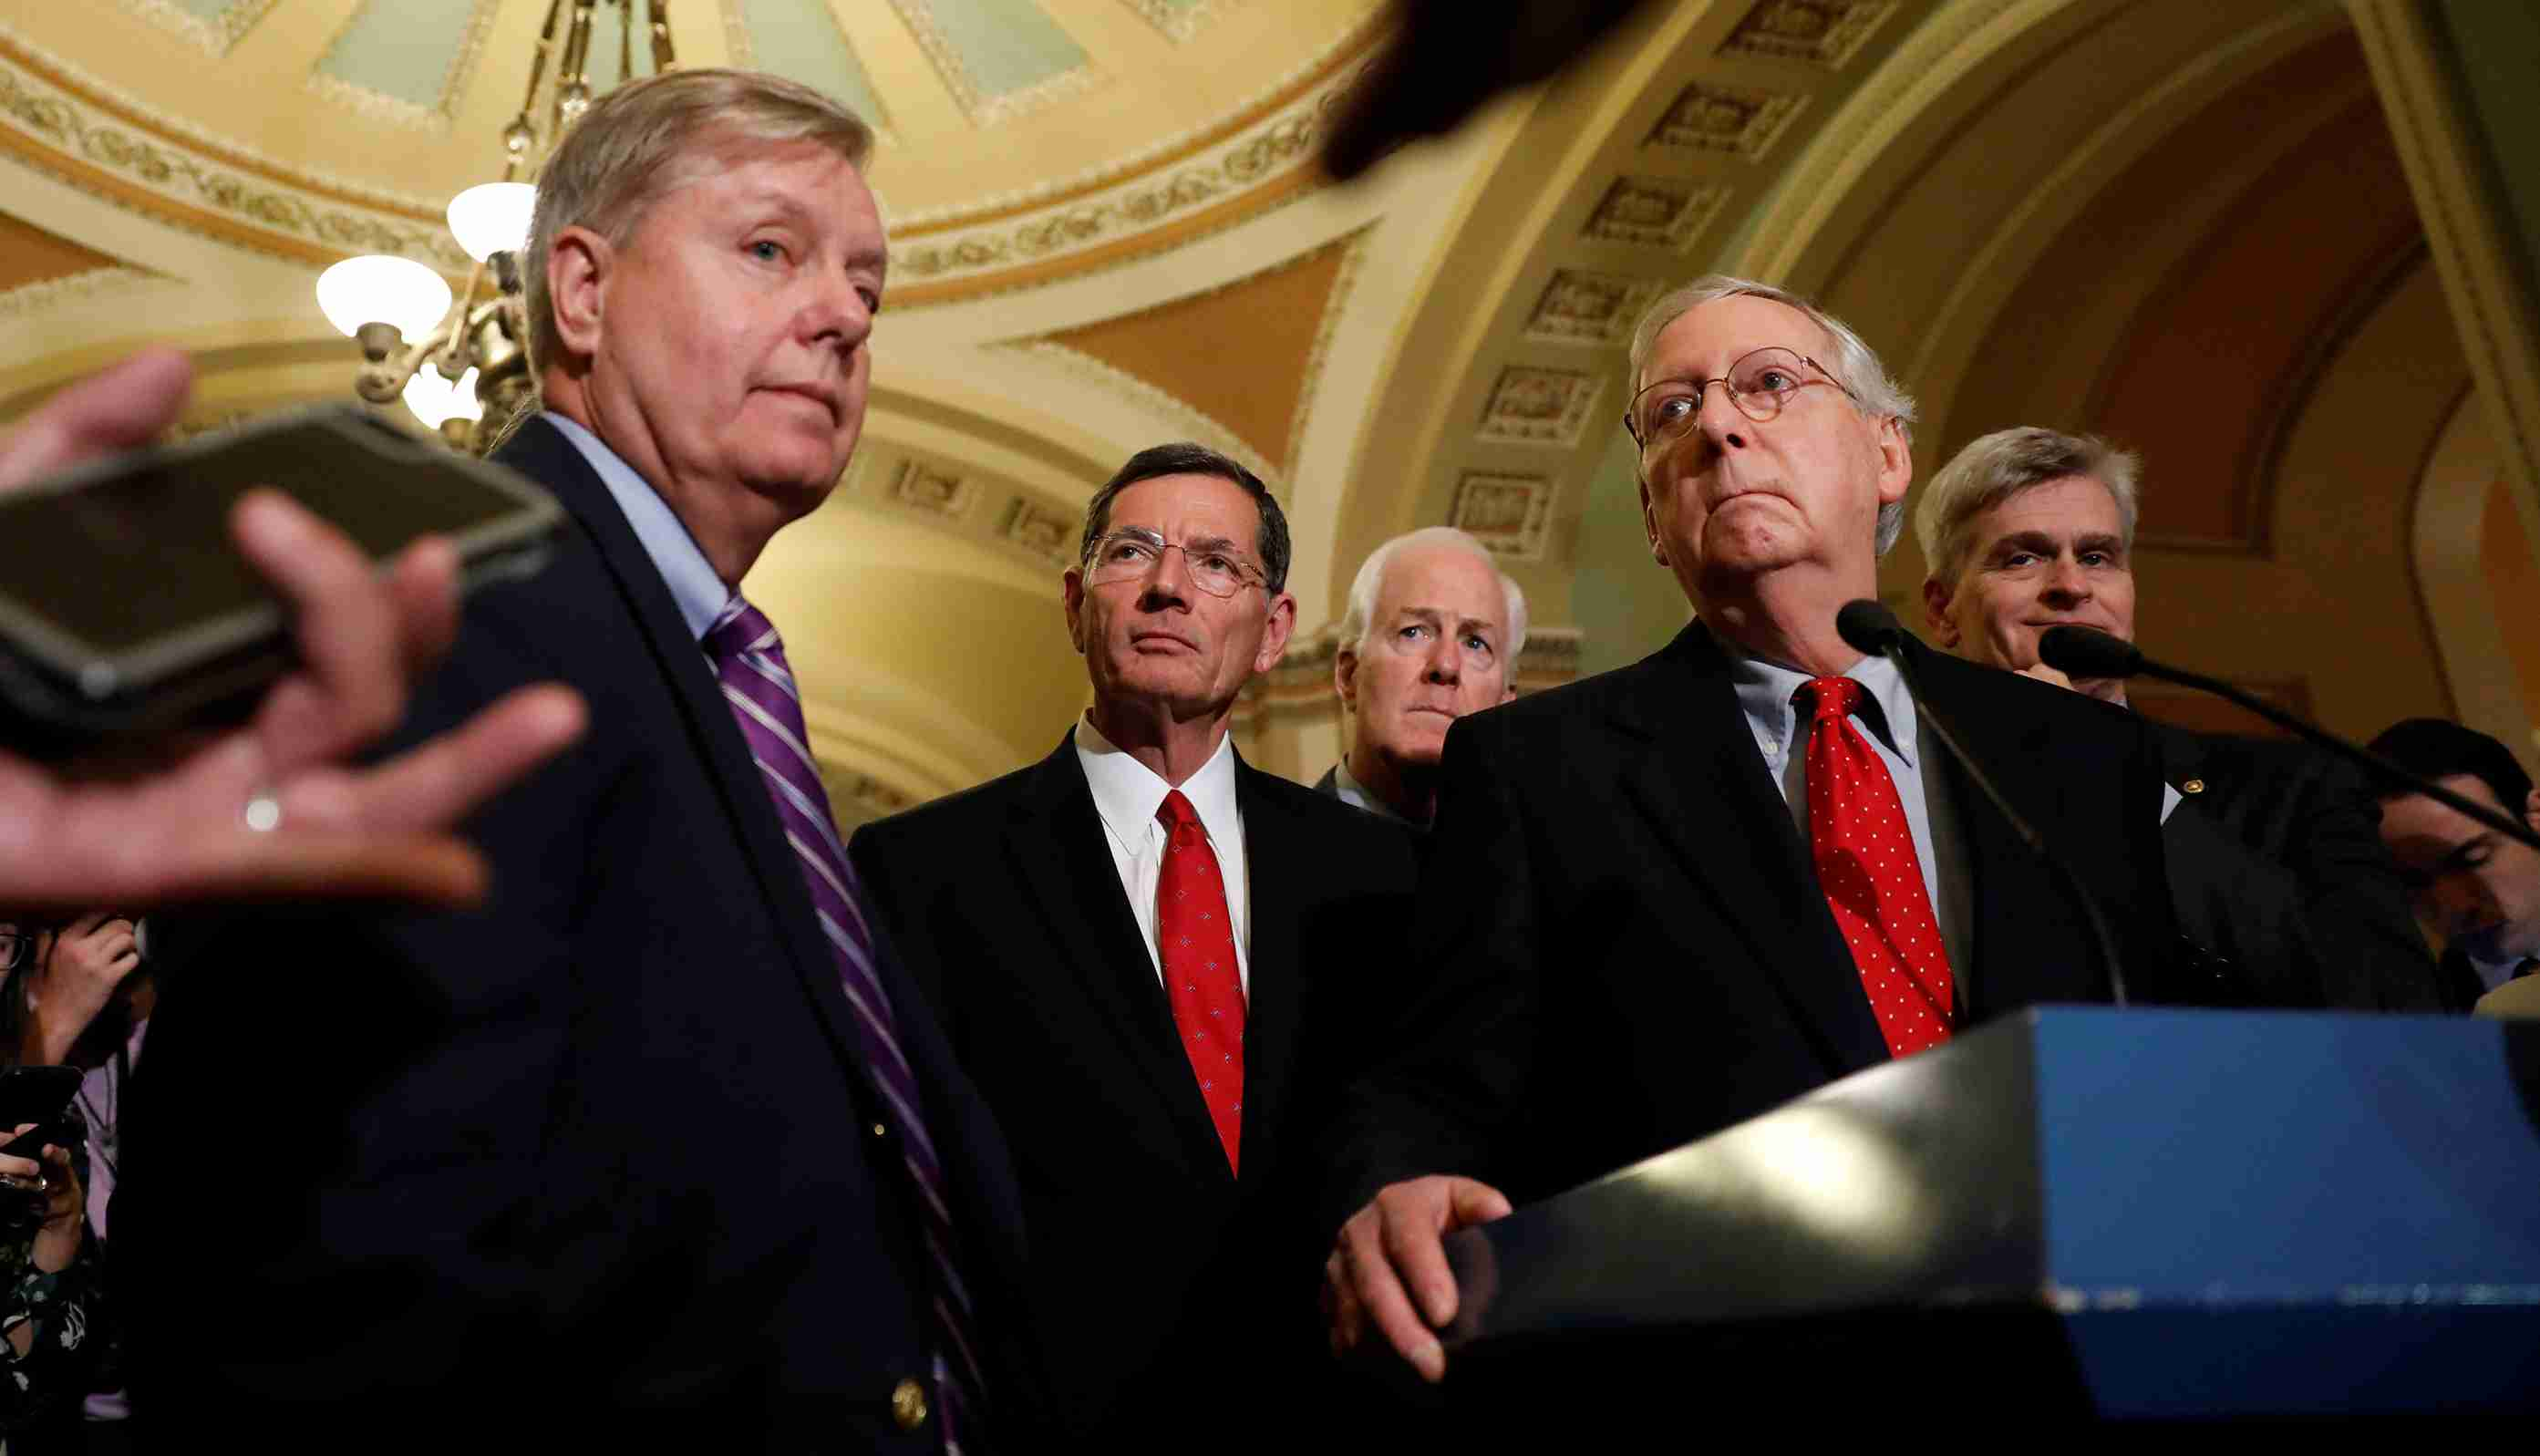 Senate Majority Leader Mitch McConnell, accompanied by Sen. Lindsey Graham (R-SC), Sen. John Barrasso (R-WY), Sen. John Cornyn (R-TX) and Sen. Bill Cassidy (R-LA), speaks with reporters following the party luncheons on Capitol Hill.